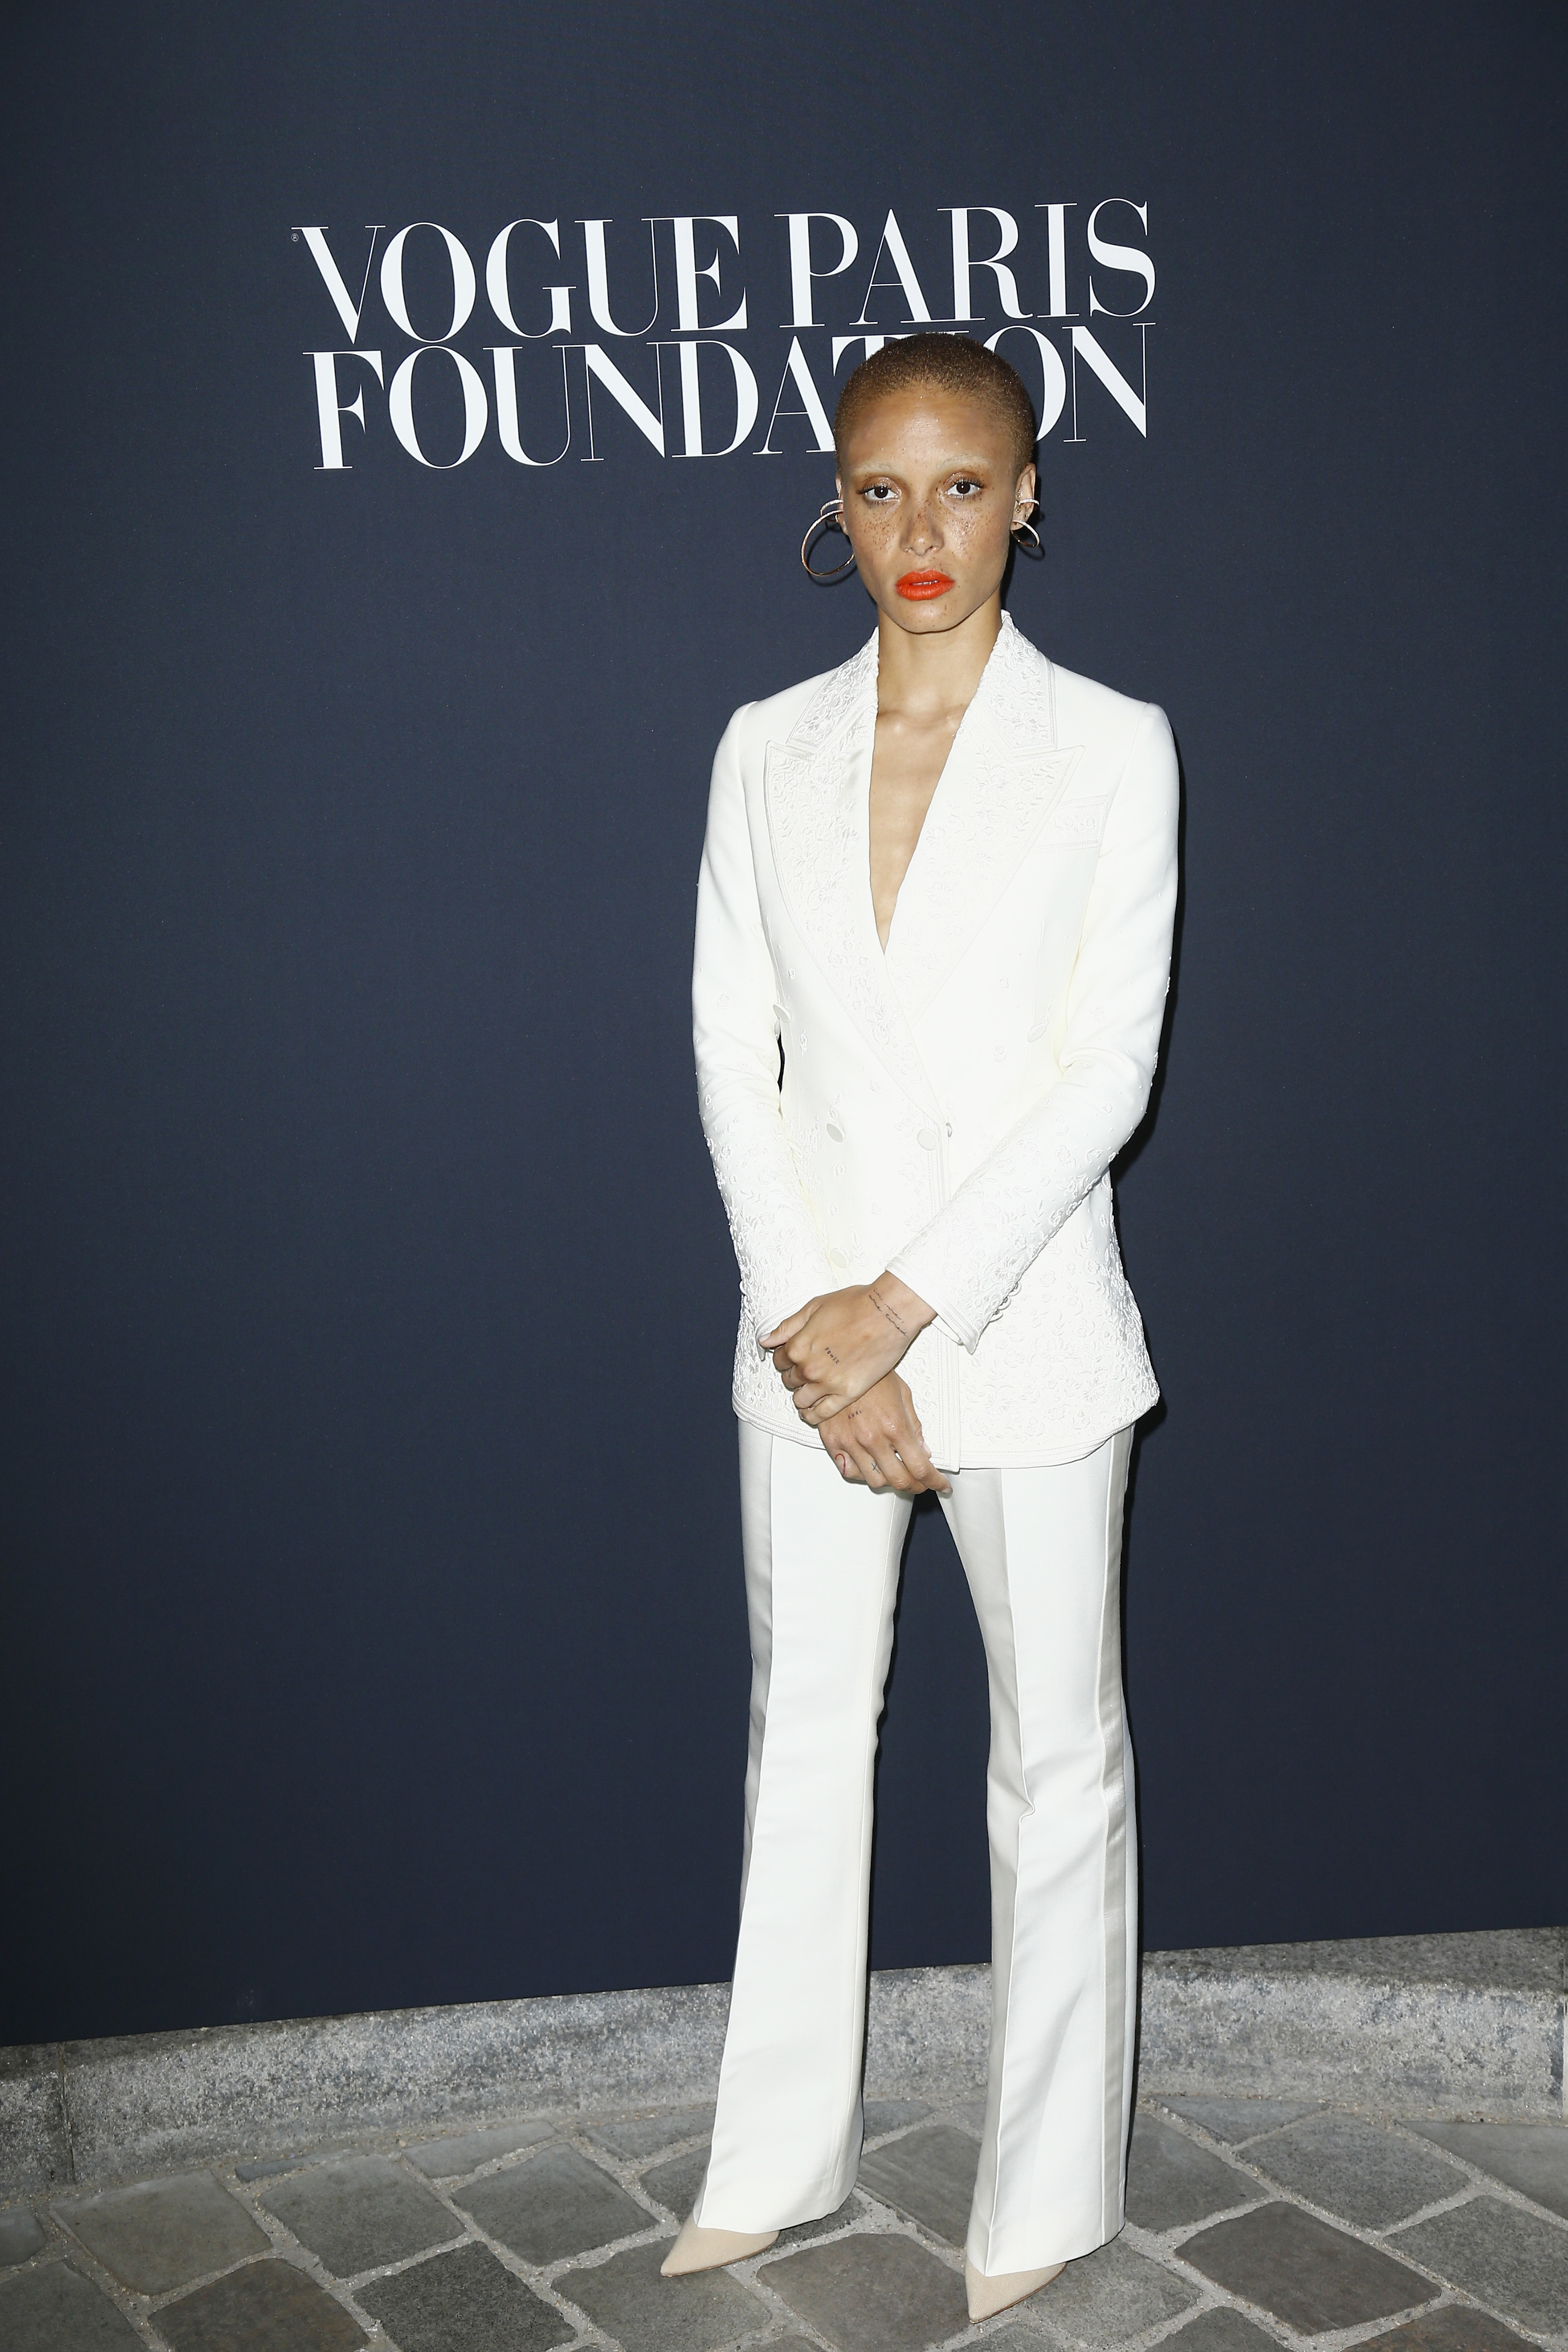 PARIS, FRANCE - JULY 04:  Adwoa Aboah attends the Vogue Foundation Dinner during Paris Fashion Week as part of Haute Couture Fall/Winter 2017-2018 at Musee Galliera on July 4, 2017 in Paris, France.  (Photo by Julien Hekimian/Getty Images for Vogue)